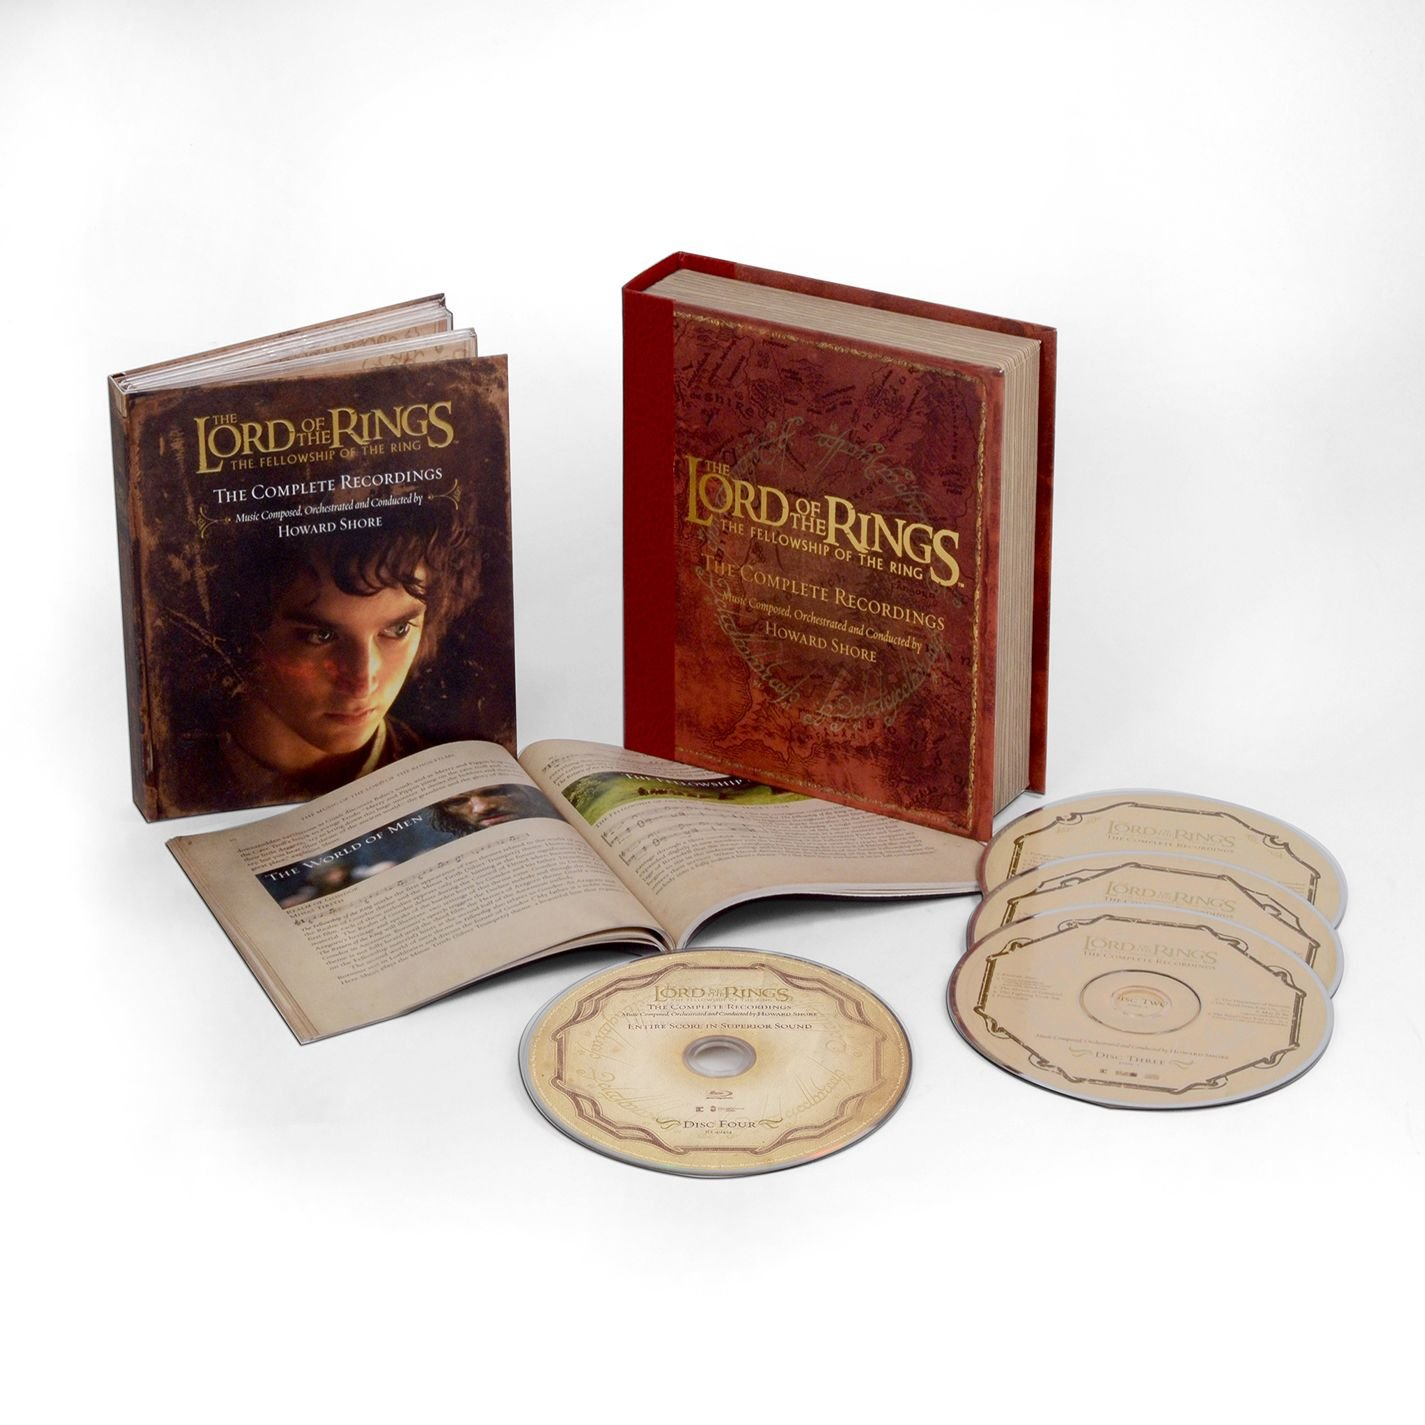 The Lord Of The Rings: The Complete Recordings